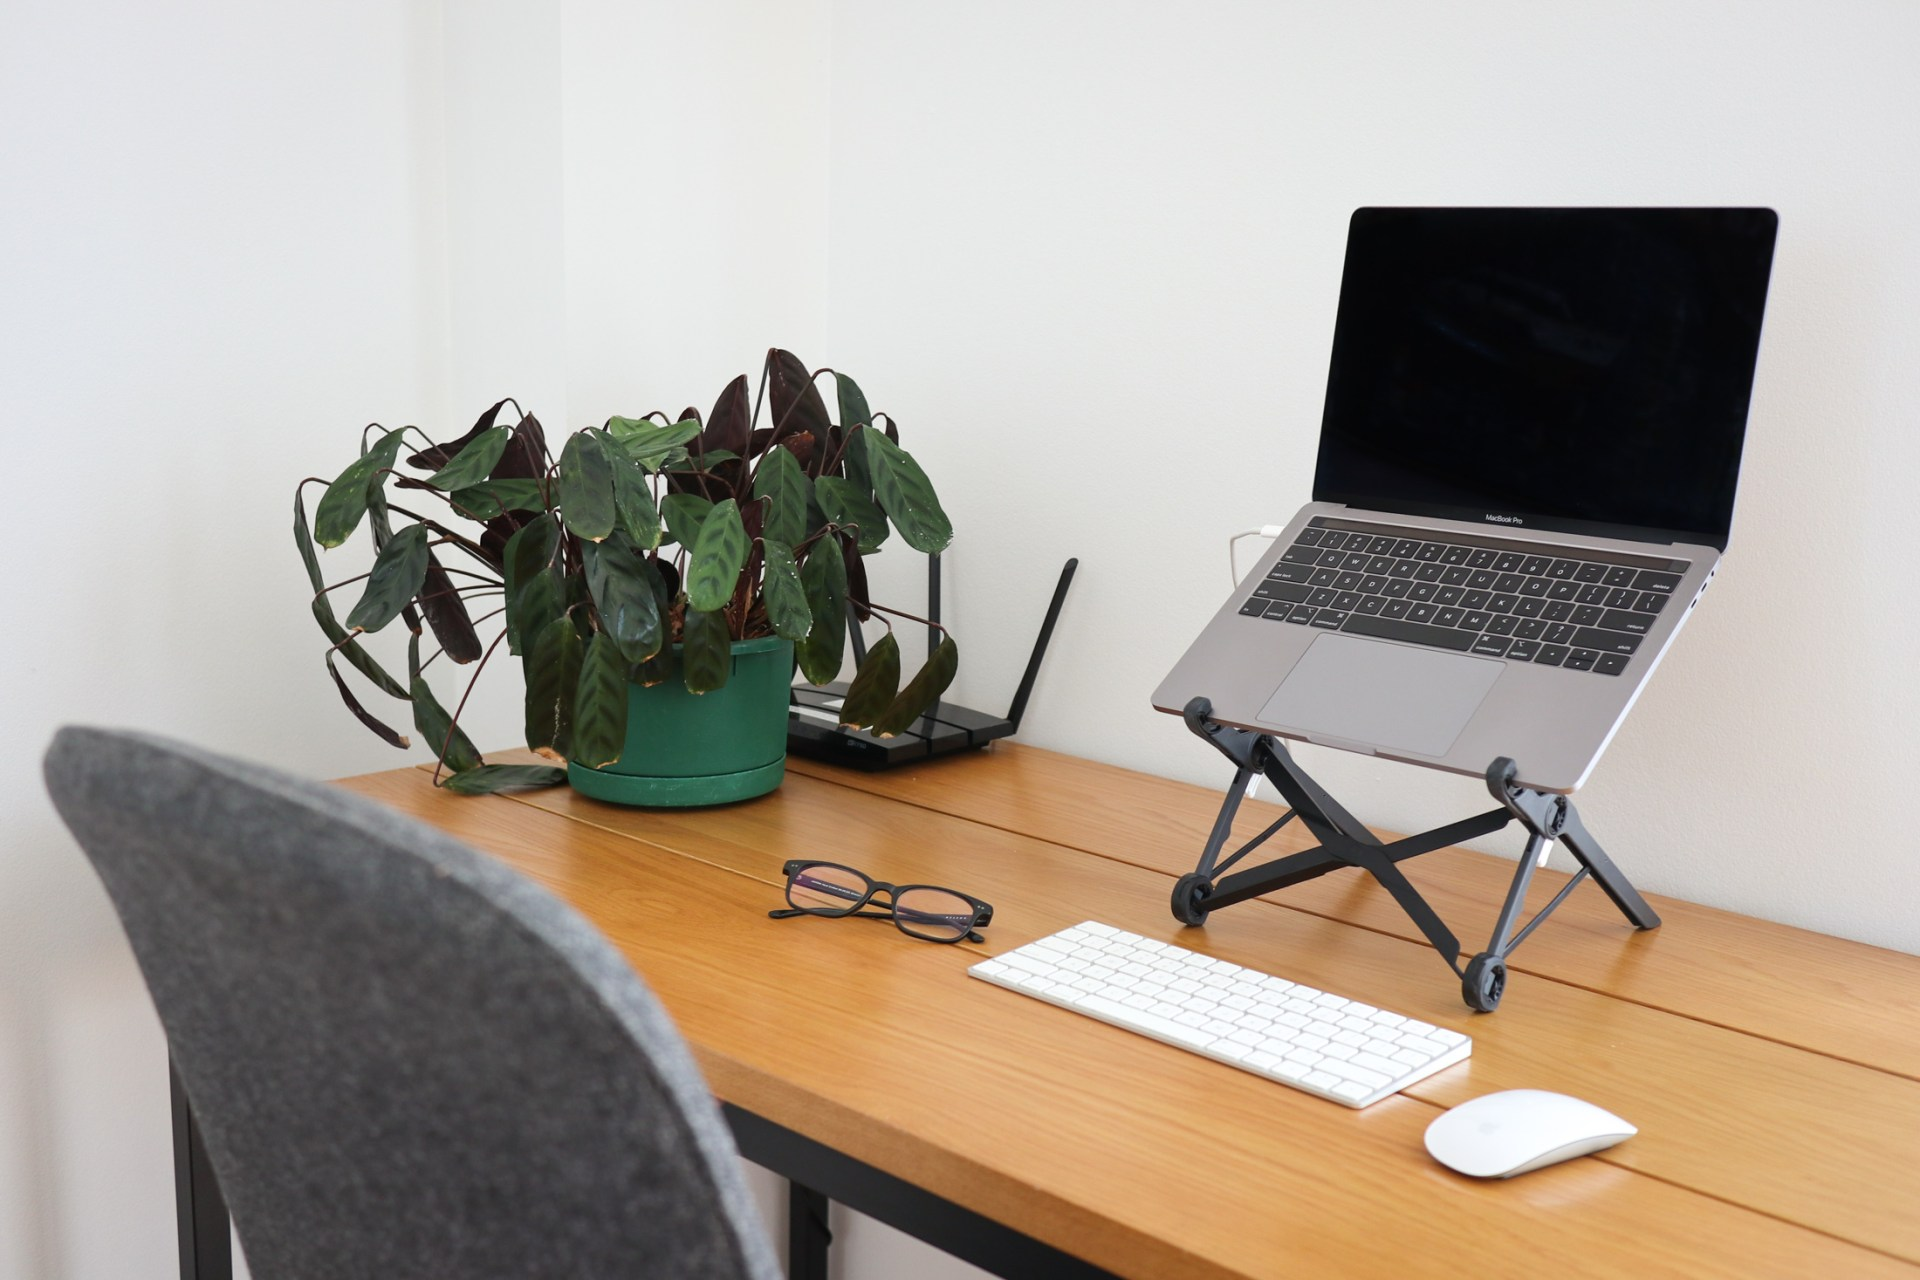 Home office setup with laptop, keyboard, mouse, and desk plant